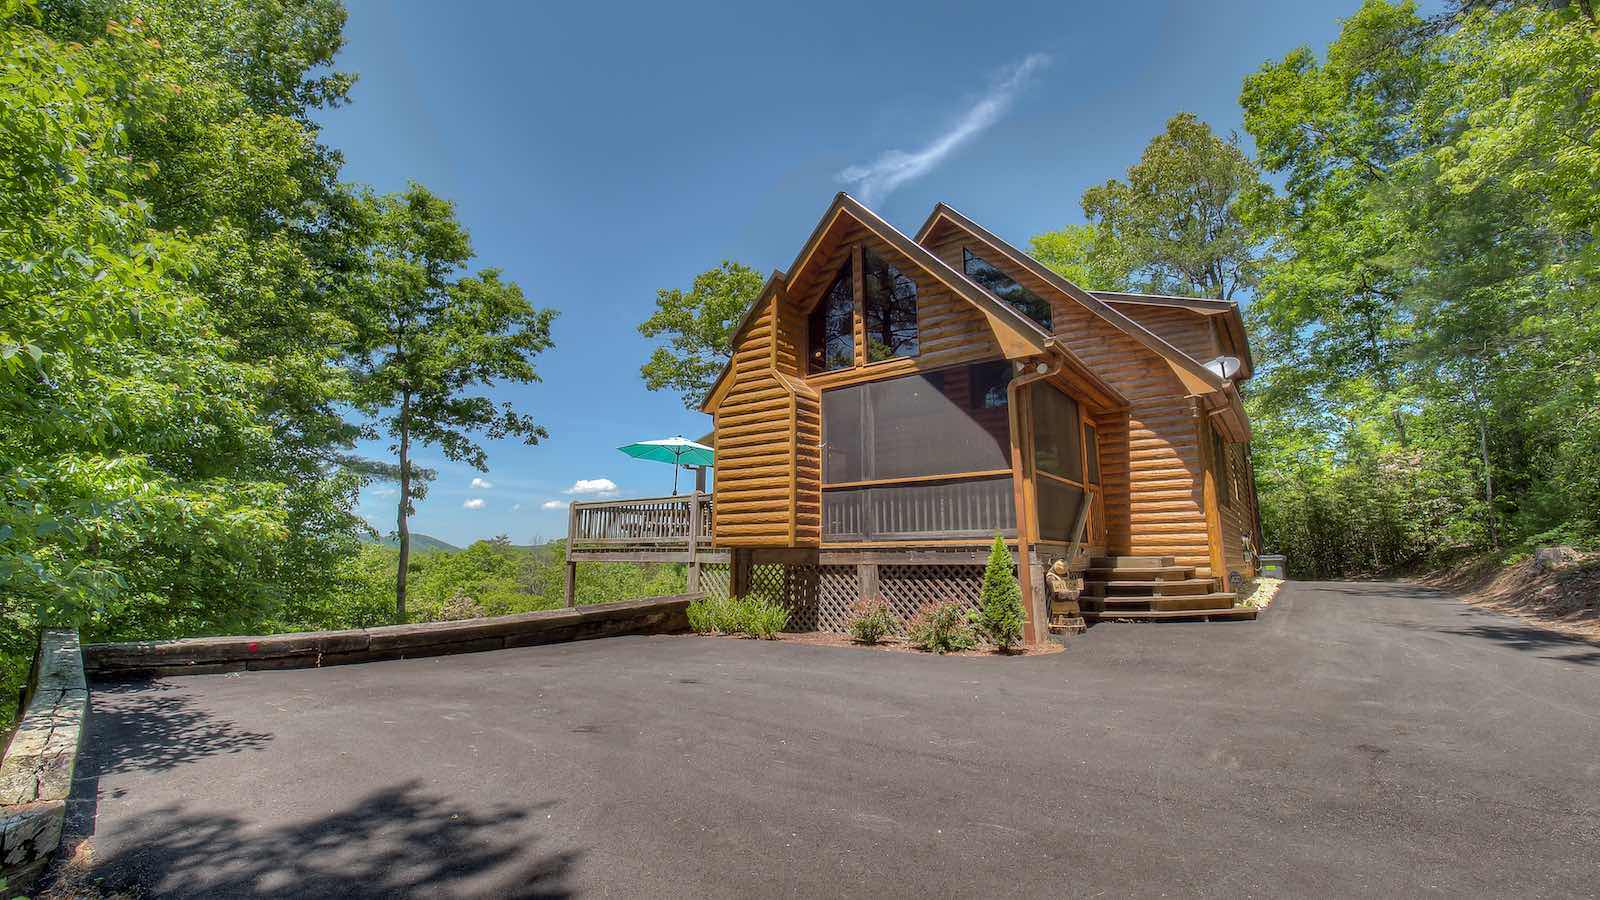 vction cabins nd getwy smoky sevierville cherokee mountain rental tn great rentals plce tennessee cabin dorble dccor nc specil affordable